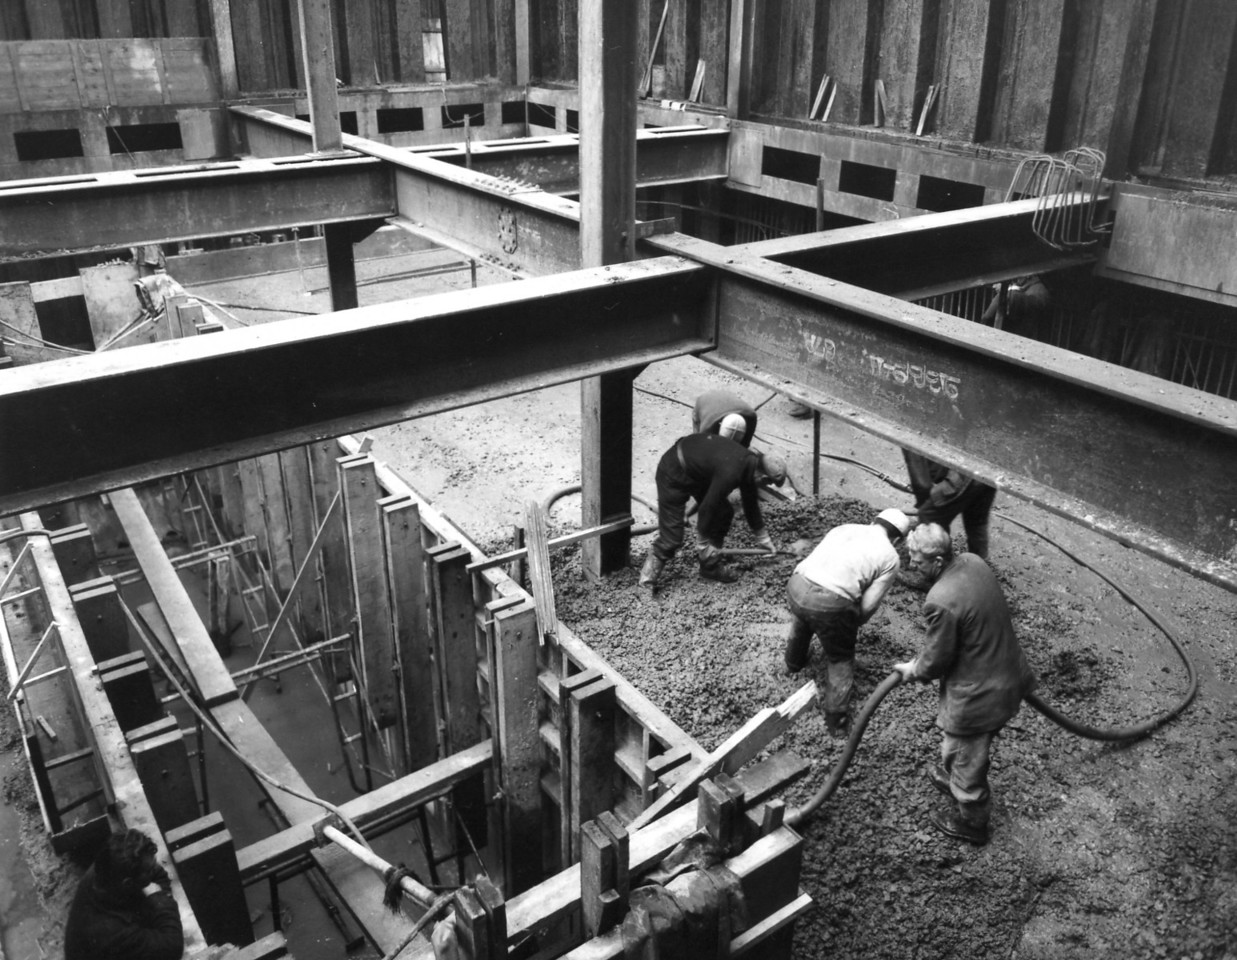 D056Entrance works - west roundhead showing shackle store floor and fitting culvert being concreted   27/11/1962